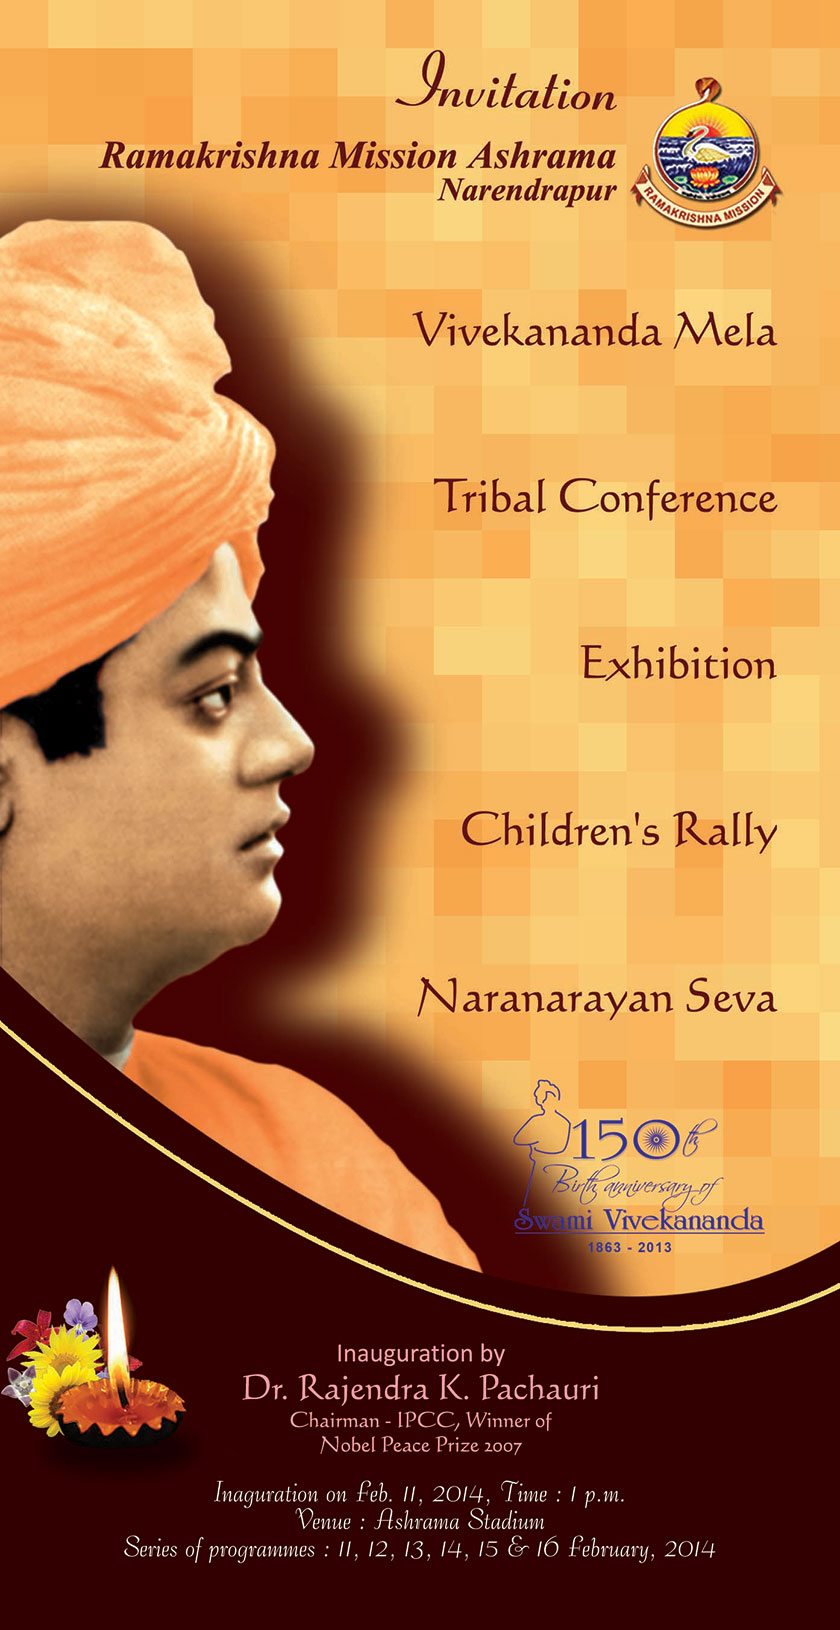 swami vivekanand essay Swami vivekananda a great and echt god-man saint philosopher and the godhead of modern hinduism was taking adherent of ramakrishna paramahamsa he profoundly influenced the western world with his 'vedanta movement' and gave hinduism a new significance and relevancy.